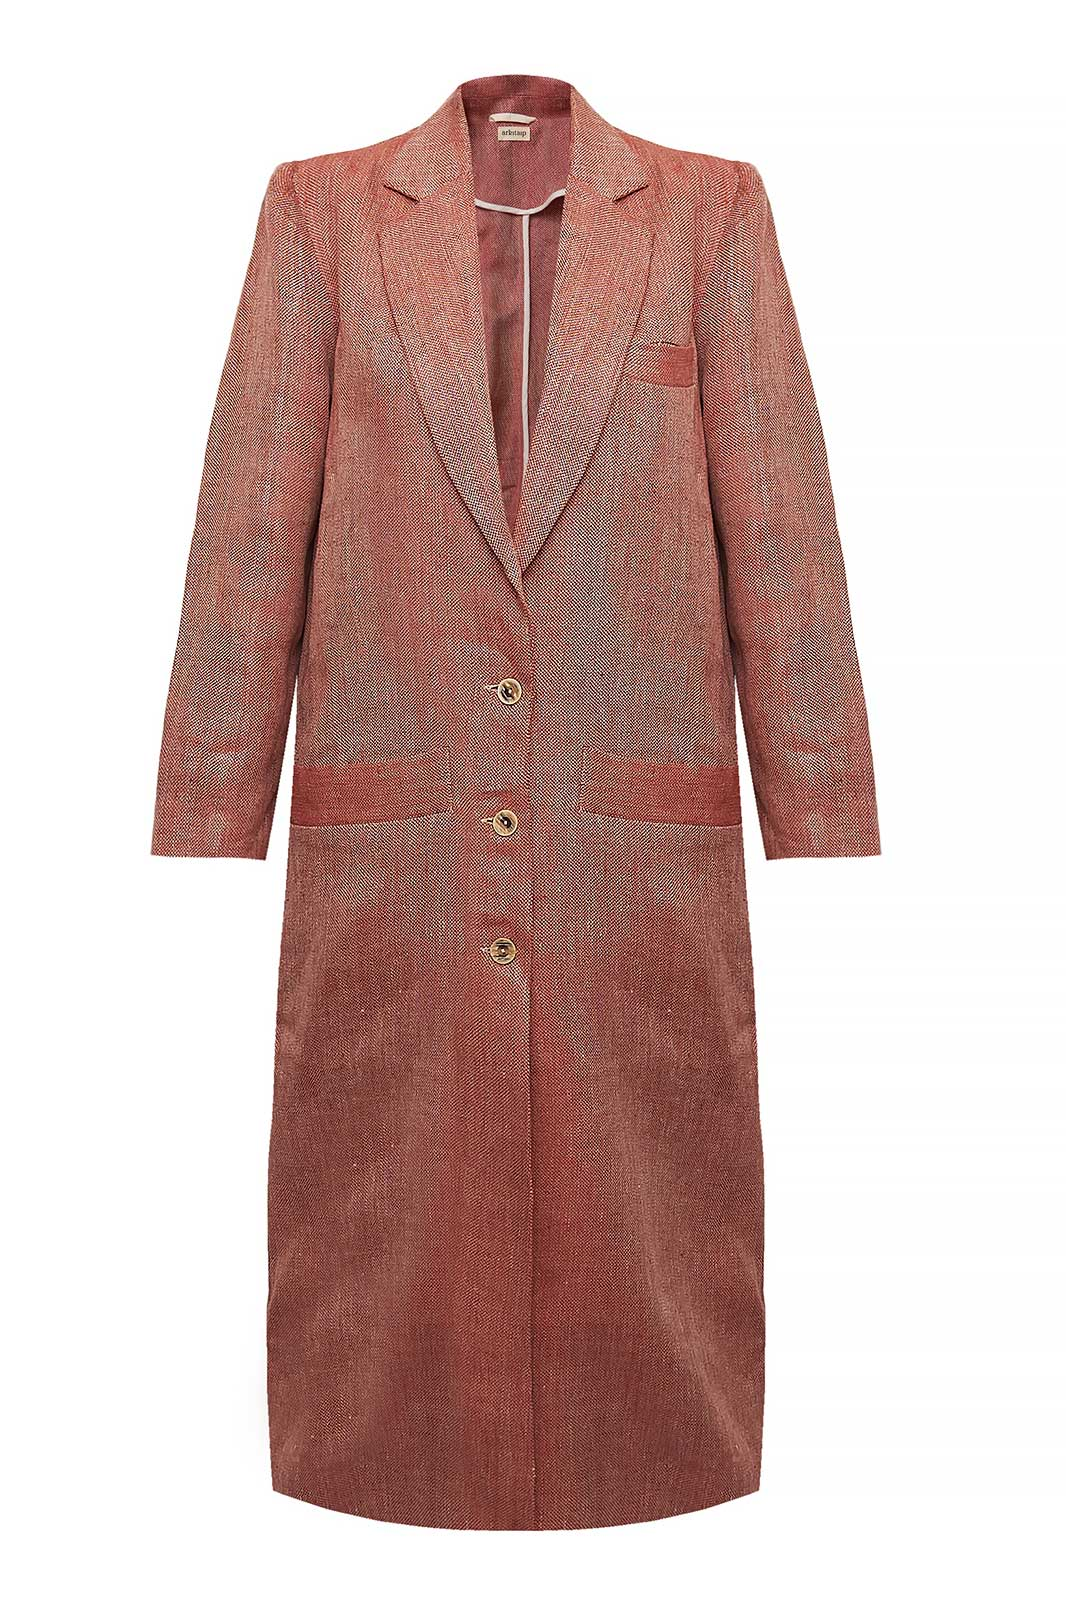 arkitaip Coats The Peppi Duster Coat in Ruby Red